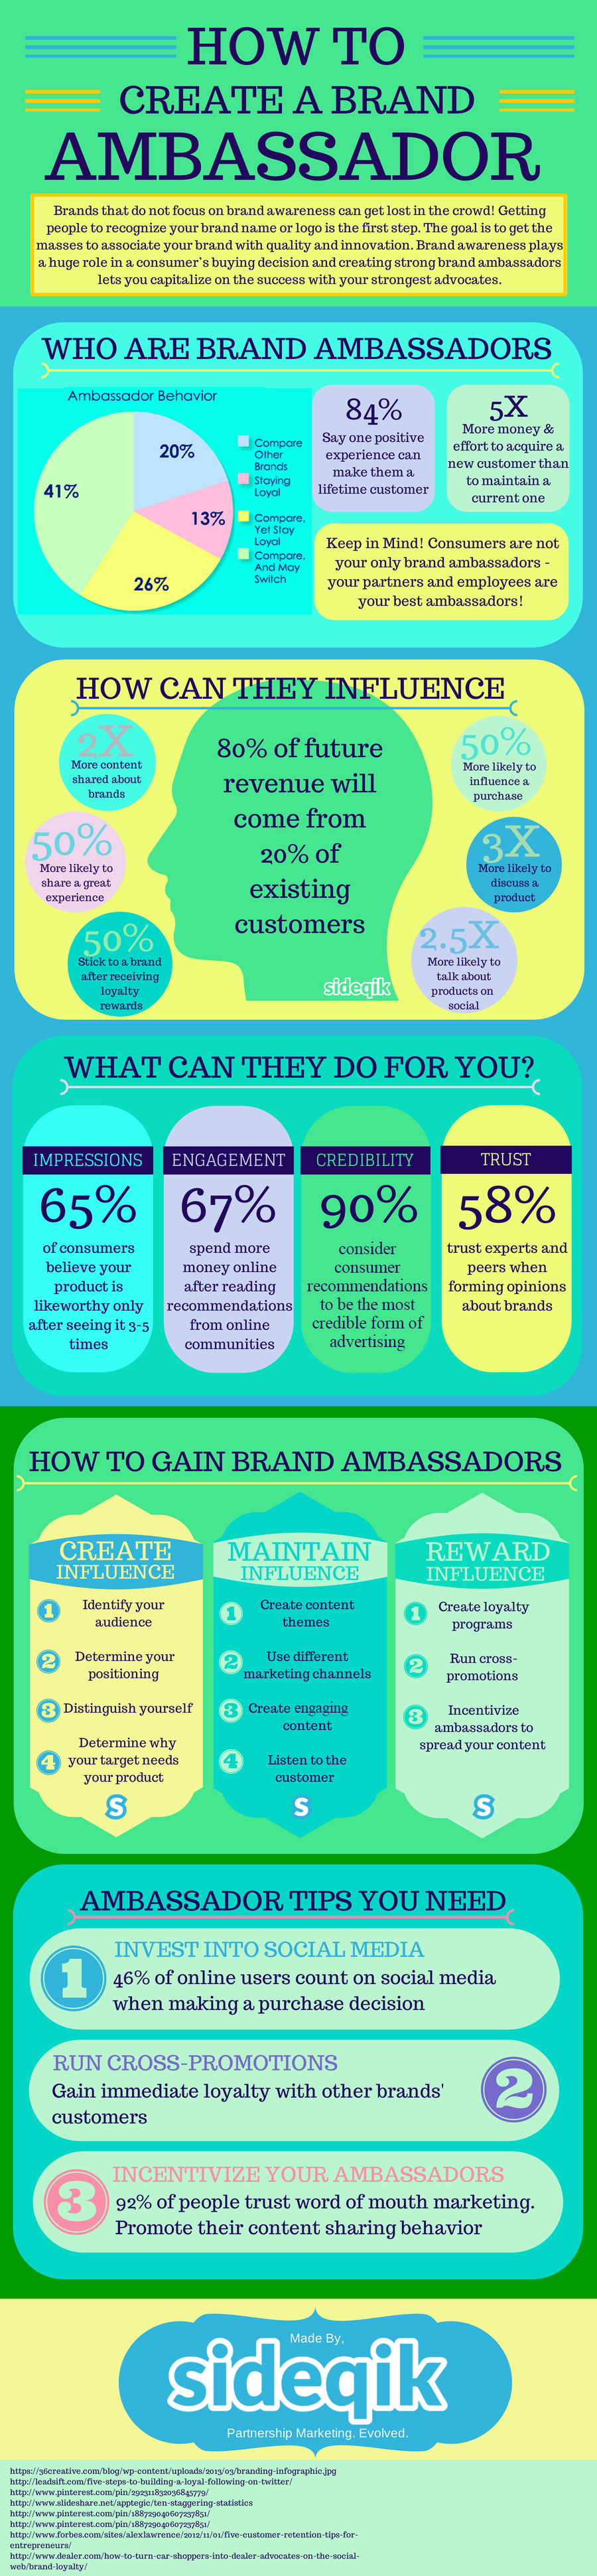 effectiveness of brand ambassadors Introduction today's competition among brands for a particular niche is really tough and challenging if this is not addressed properly, you will find yourself in the midst of brand giants that will bury your brand's popularity.